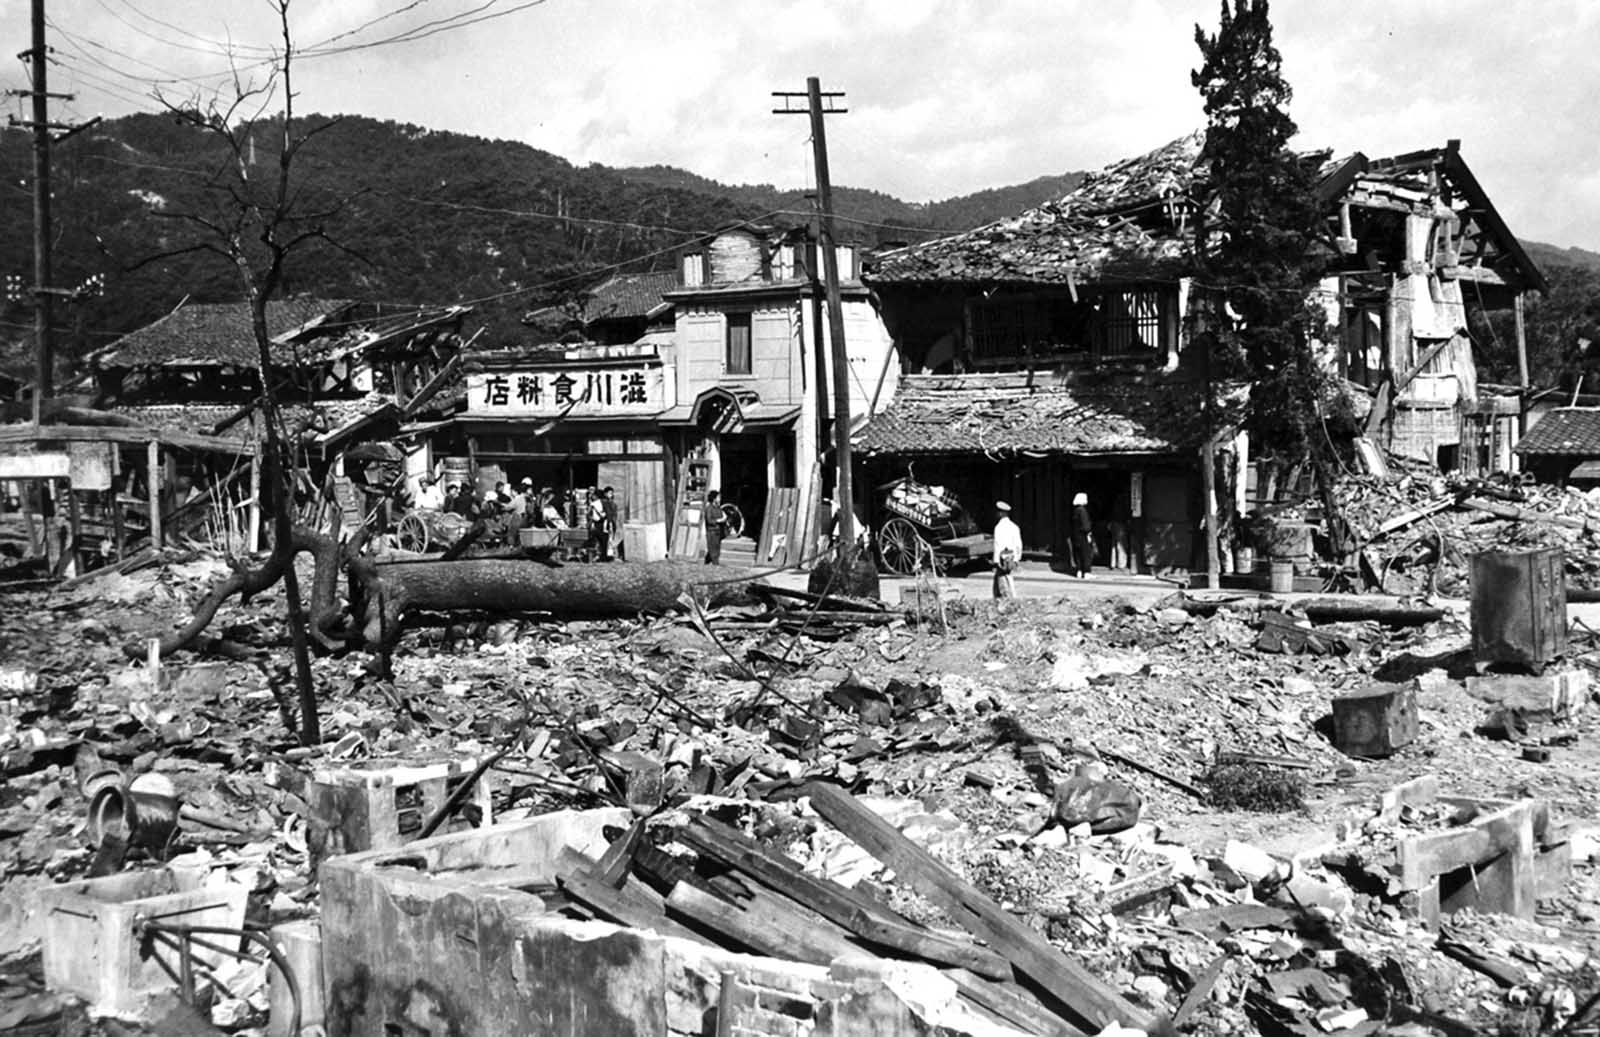 Hiroshima after the bombing.